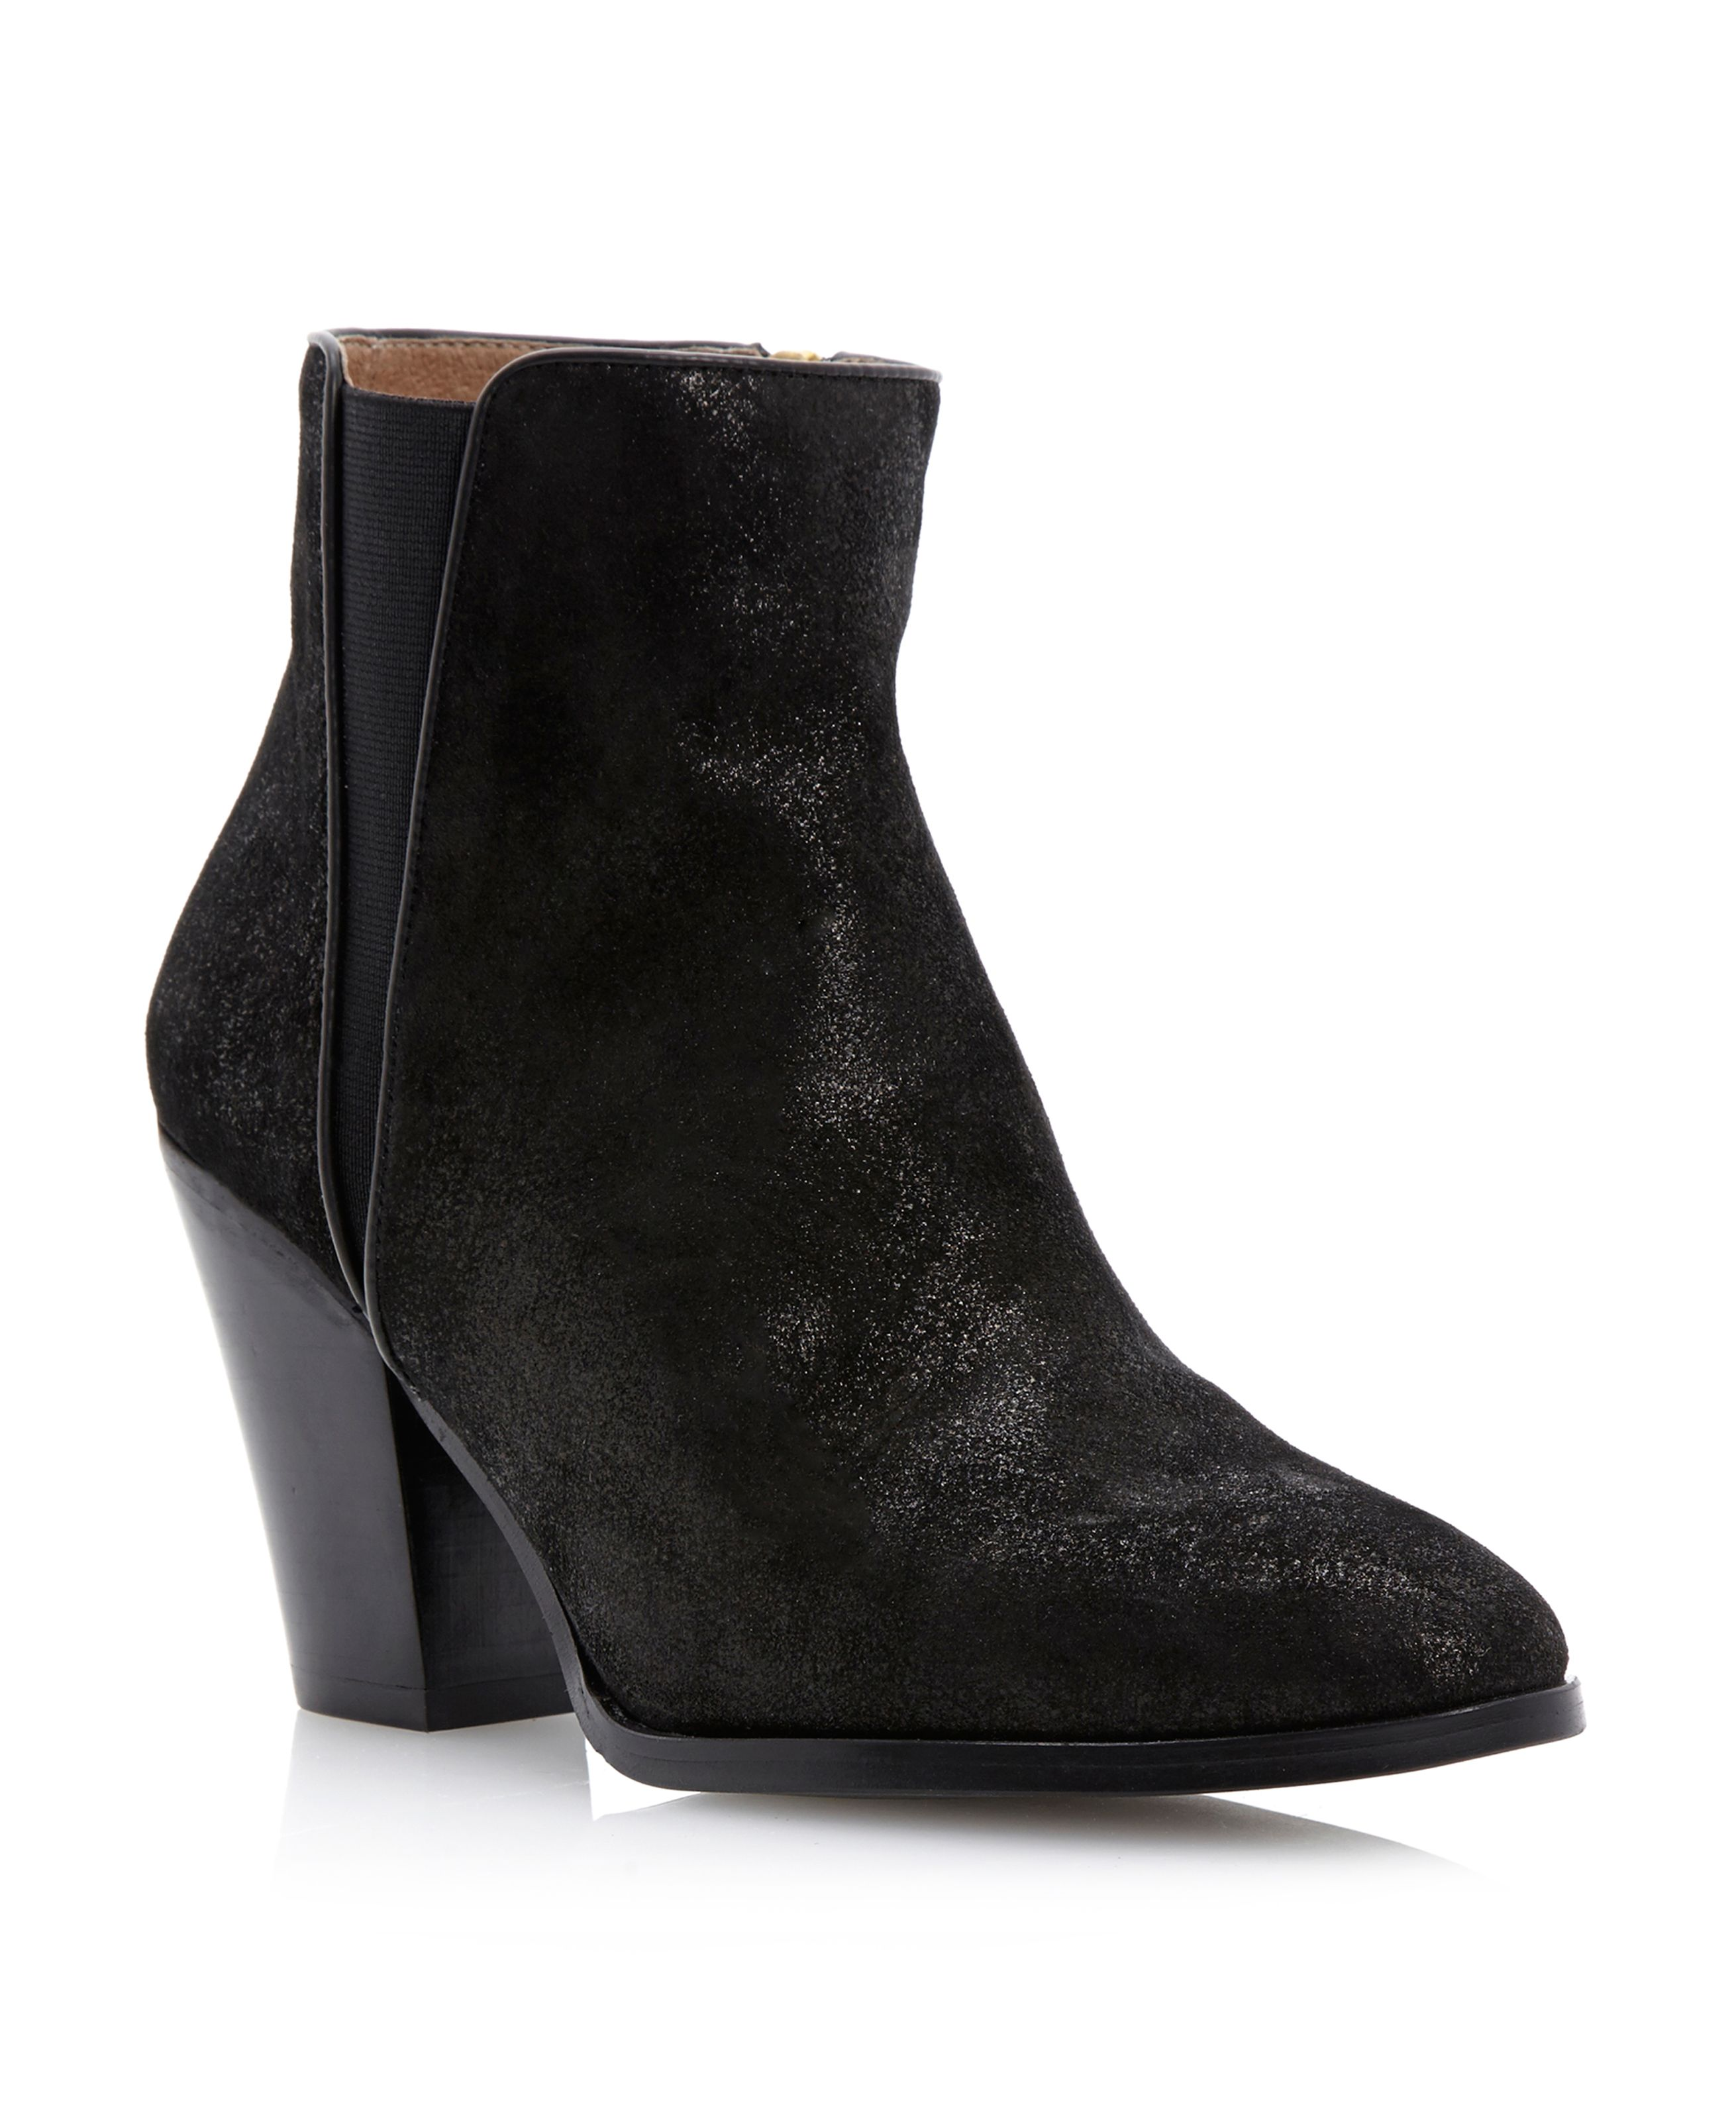 Pied A Terre Boots Shop For Cheap Women 39 S Tops And Save